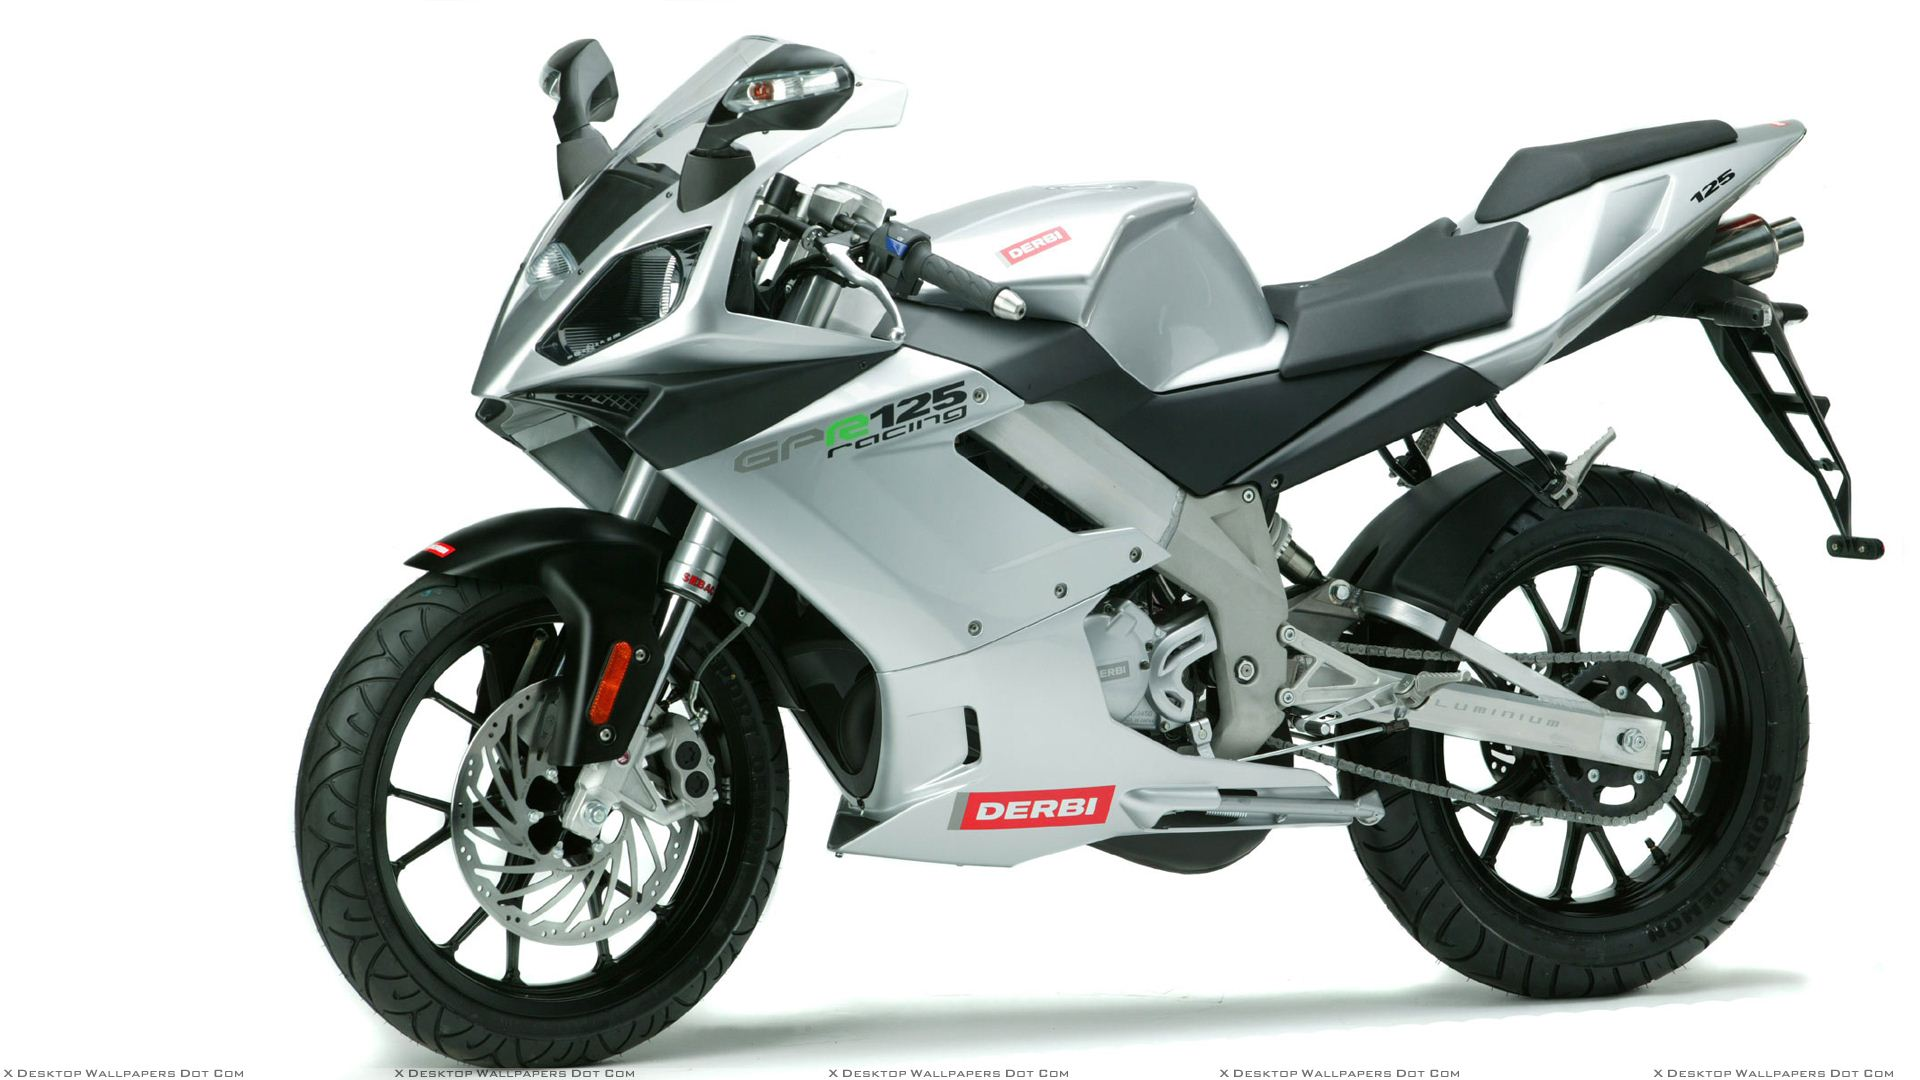 derbi gpr 125 racing in silver side pose and white backgound wallpaper. Black Bedroom Furniture Sets. Home Design Ideas